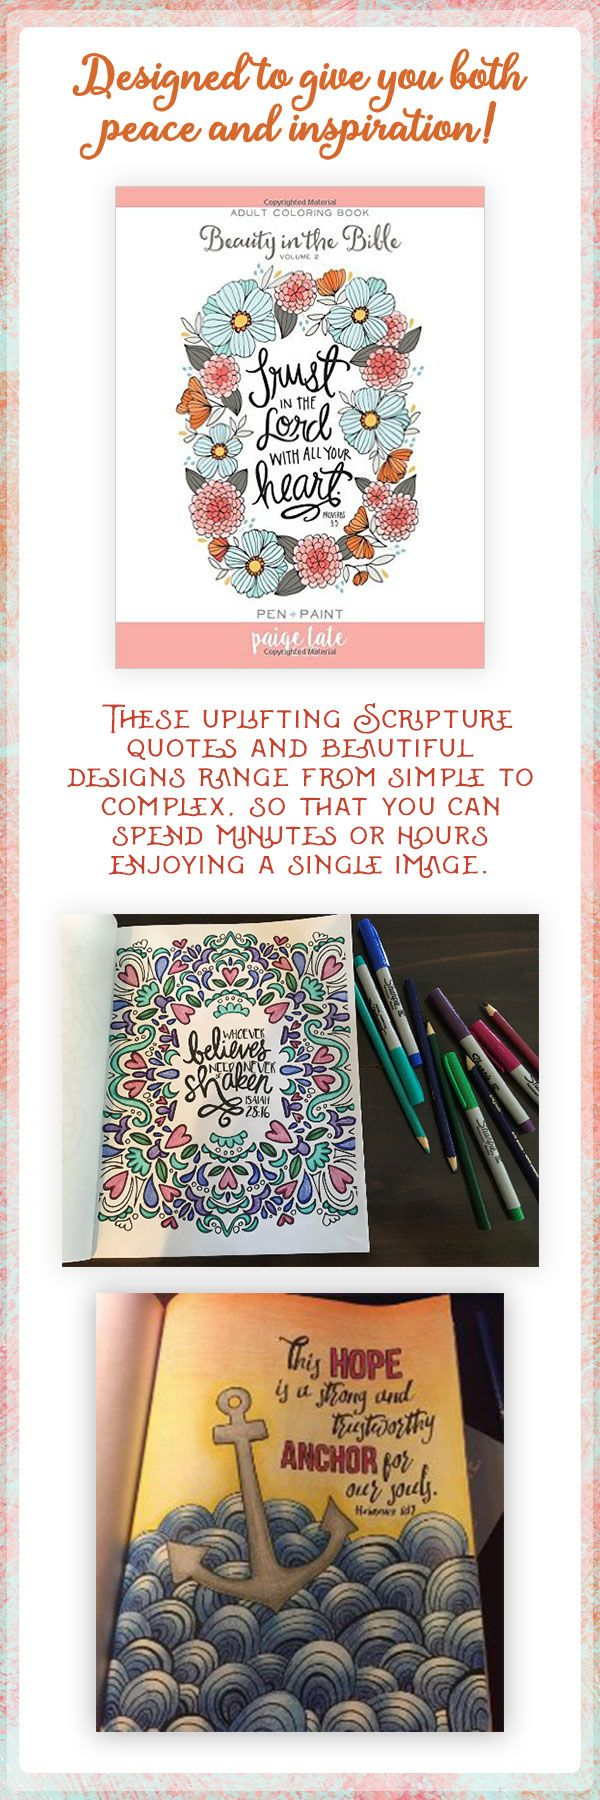 Beauty In The Bible Coloring Book For Adults Biblejournaling Biblejournallove Adultcoloring